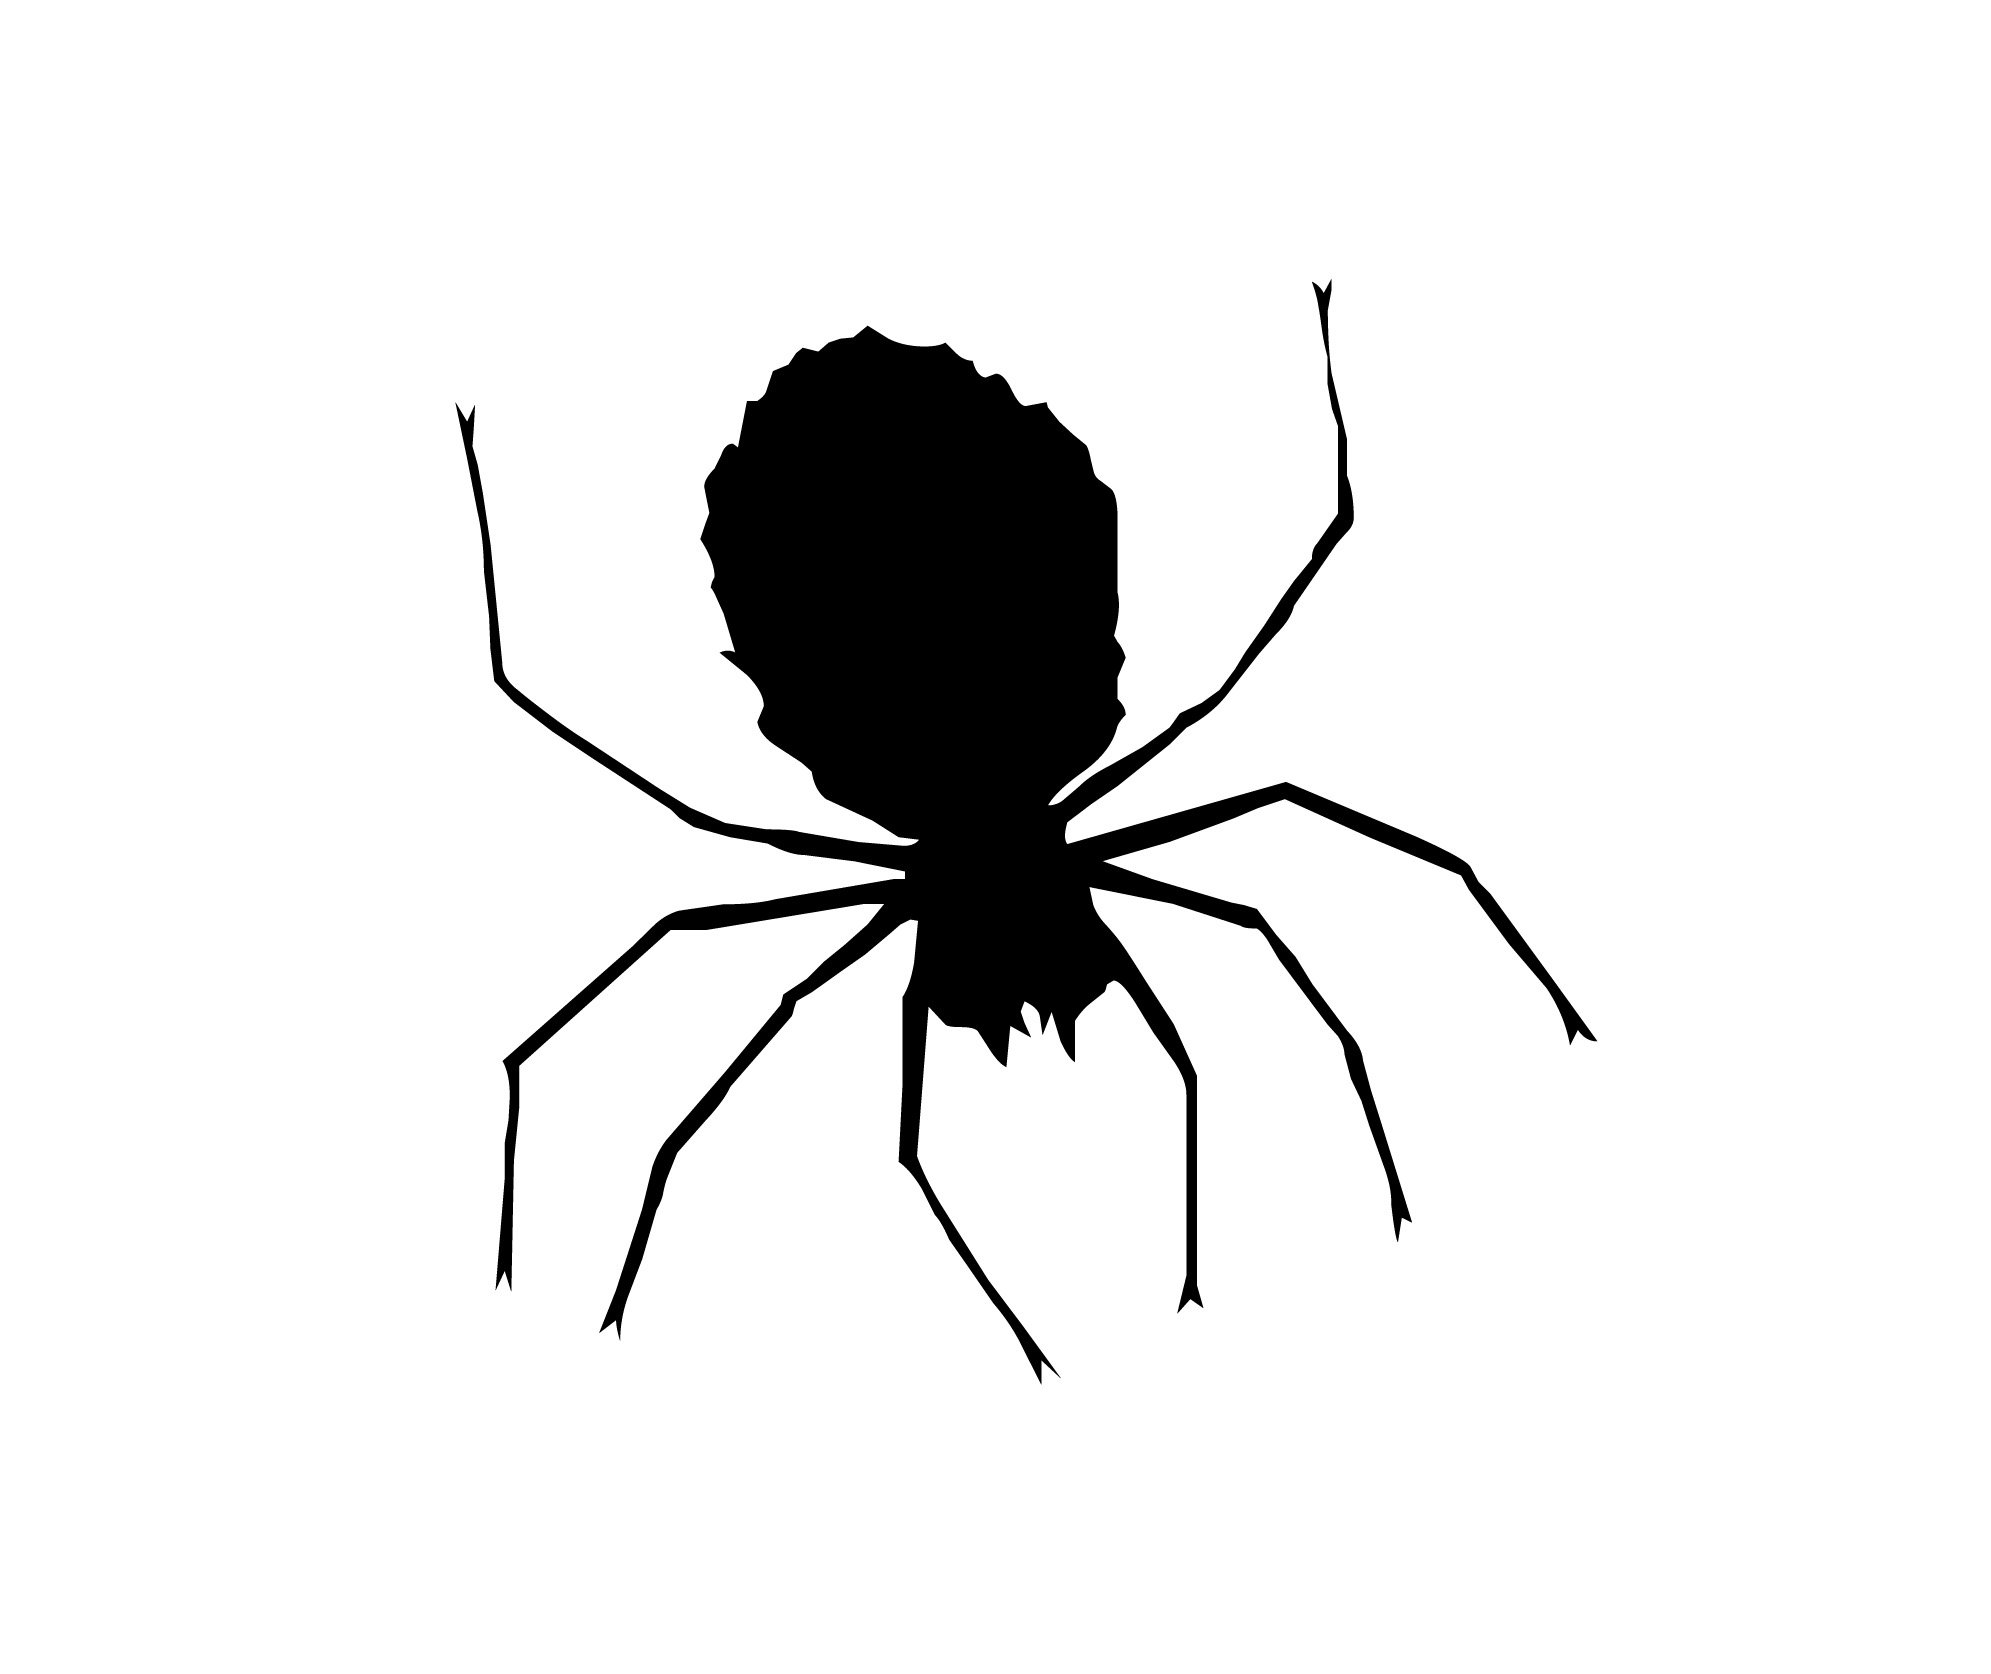 Arachnid clipart #17, Download drawings